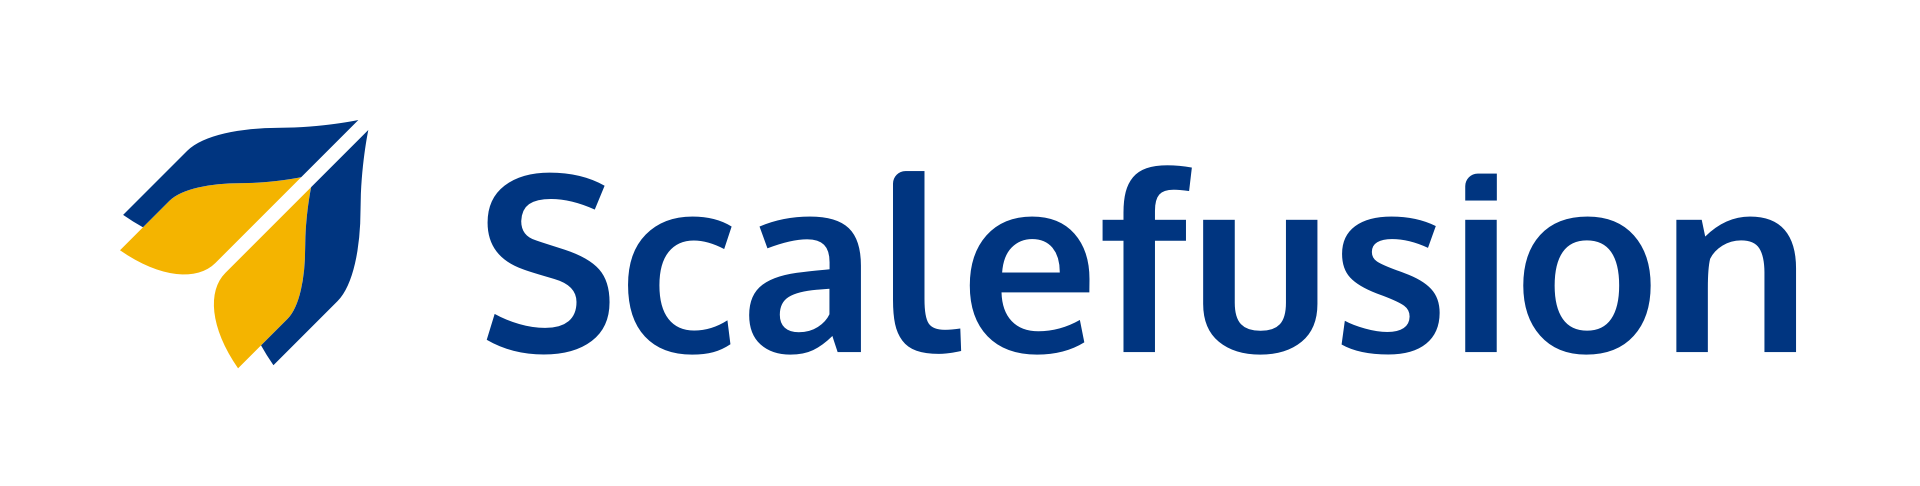 Scalefusion (Formerly MobiLock Pro) logo